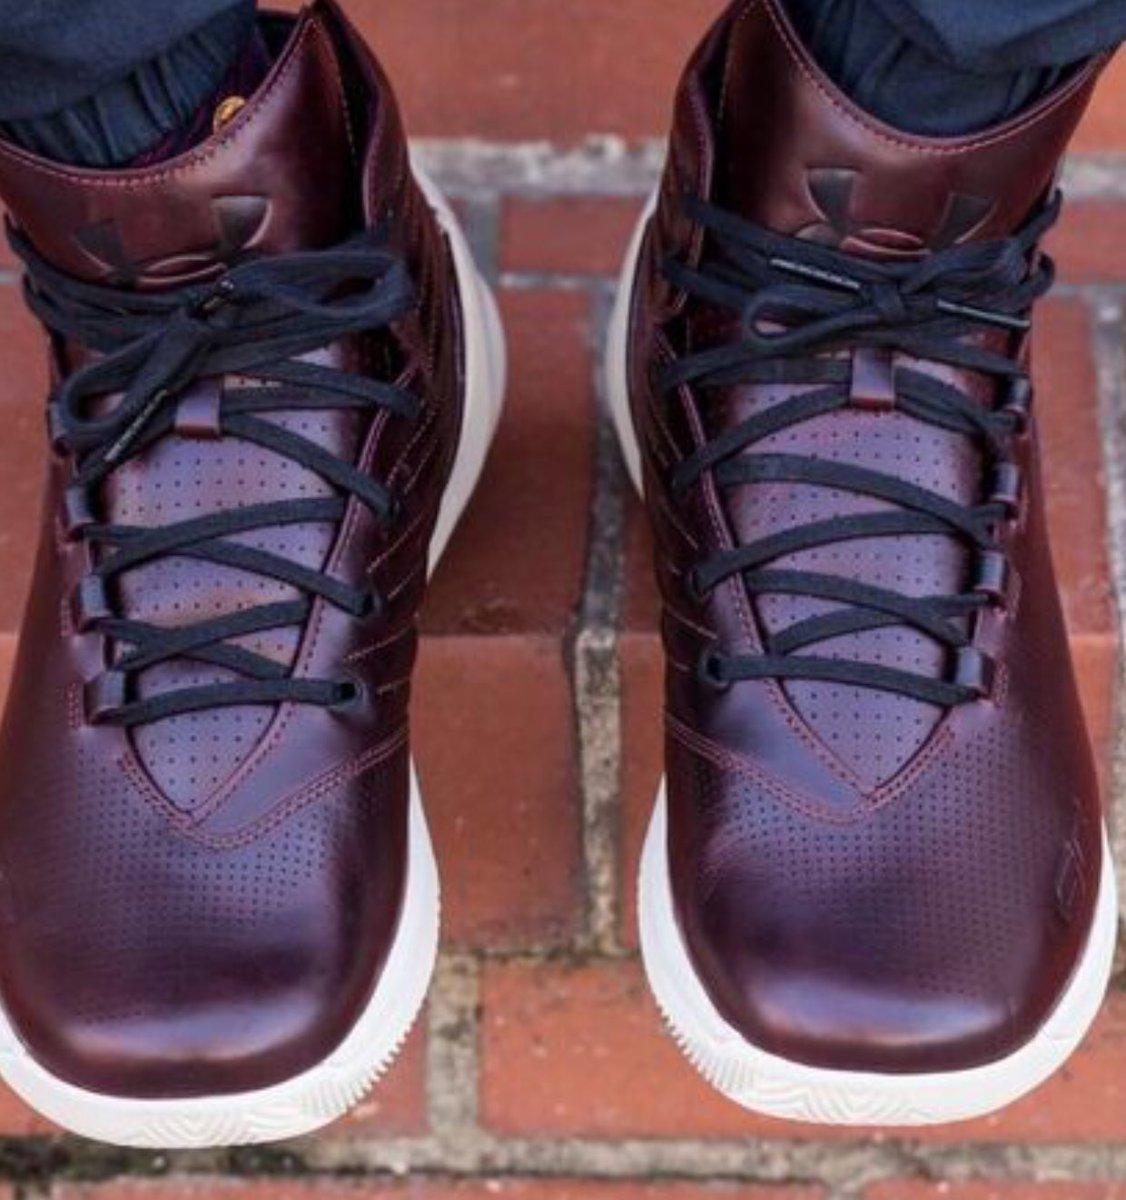 best service 58eb6 8c235 under armour has given the new curry lux oxblood colorway to players from south  carolina the